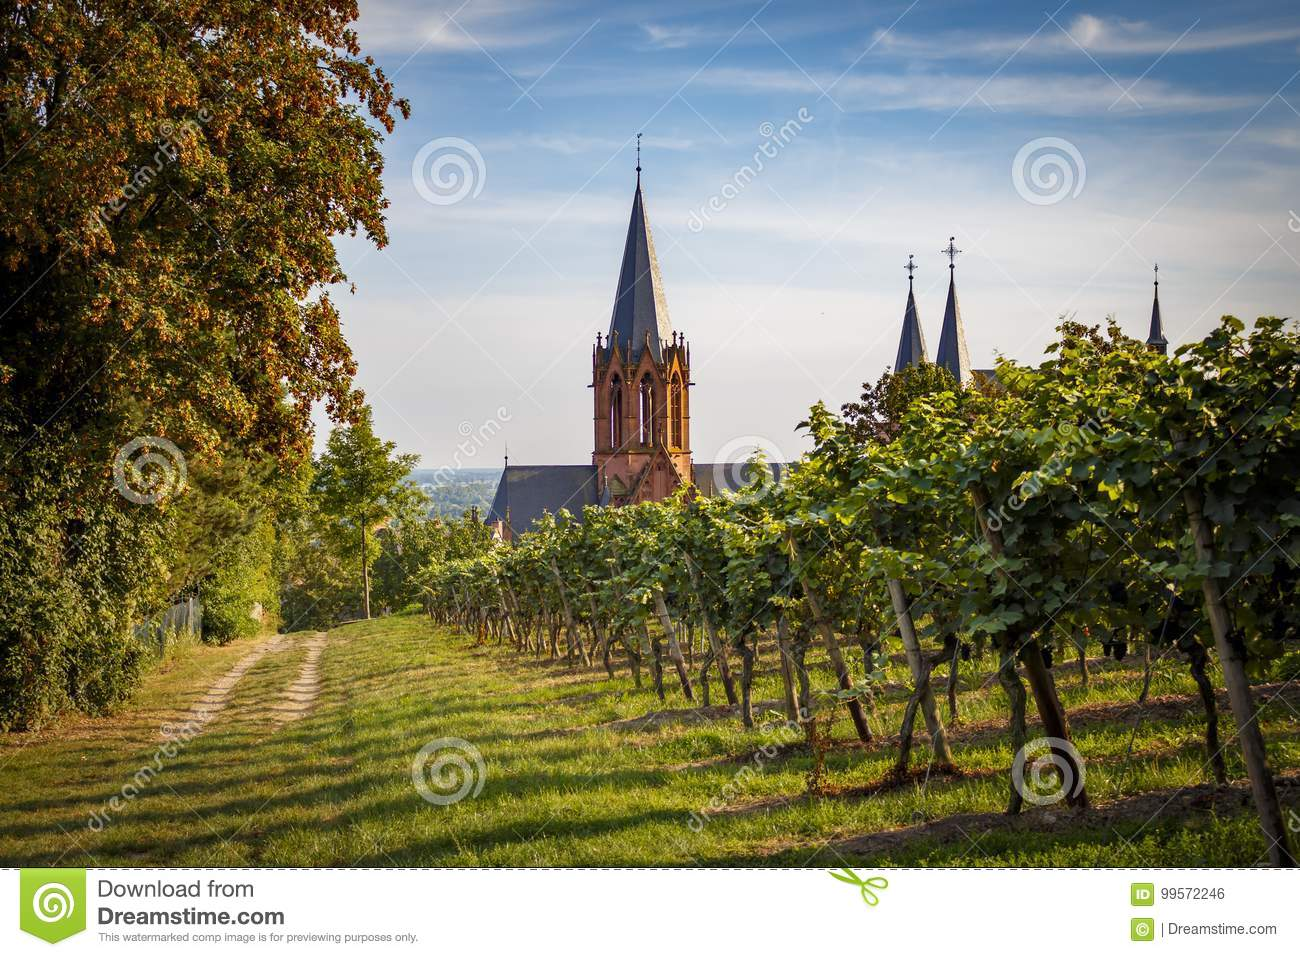 View of the gothic cathedral church Katharinenkirche in Oppenheim through romantic vineyards